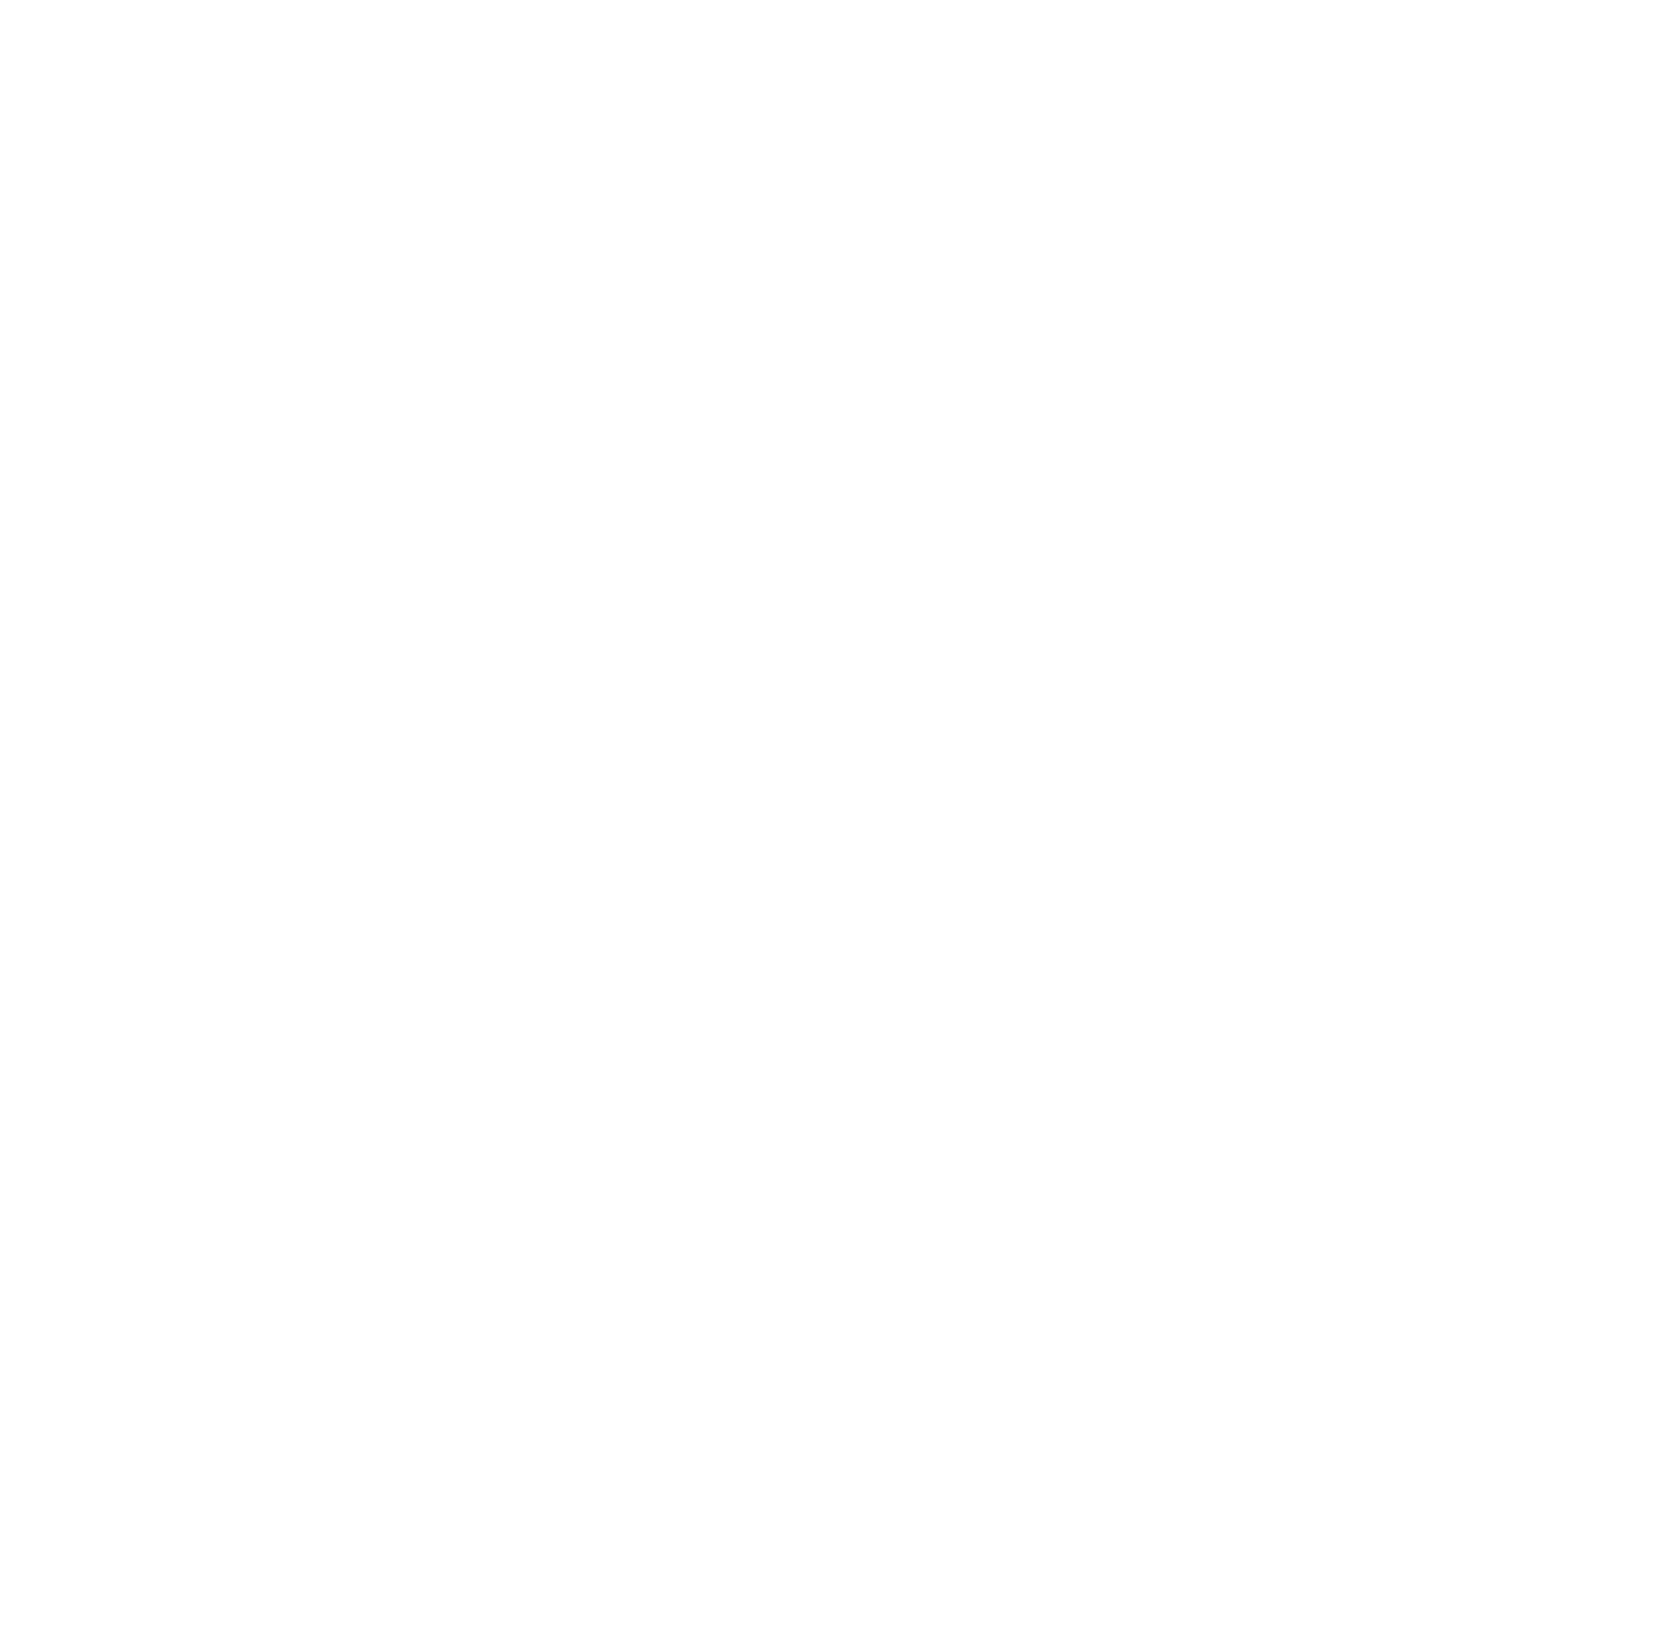 stray dogs school logo